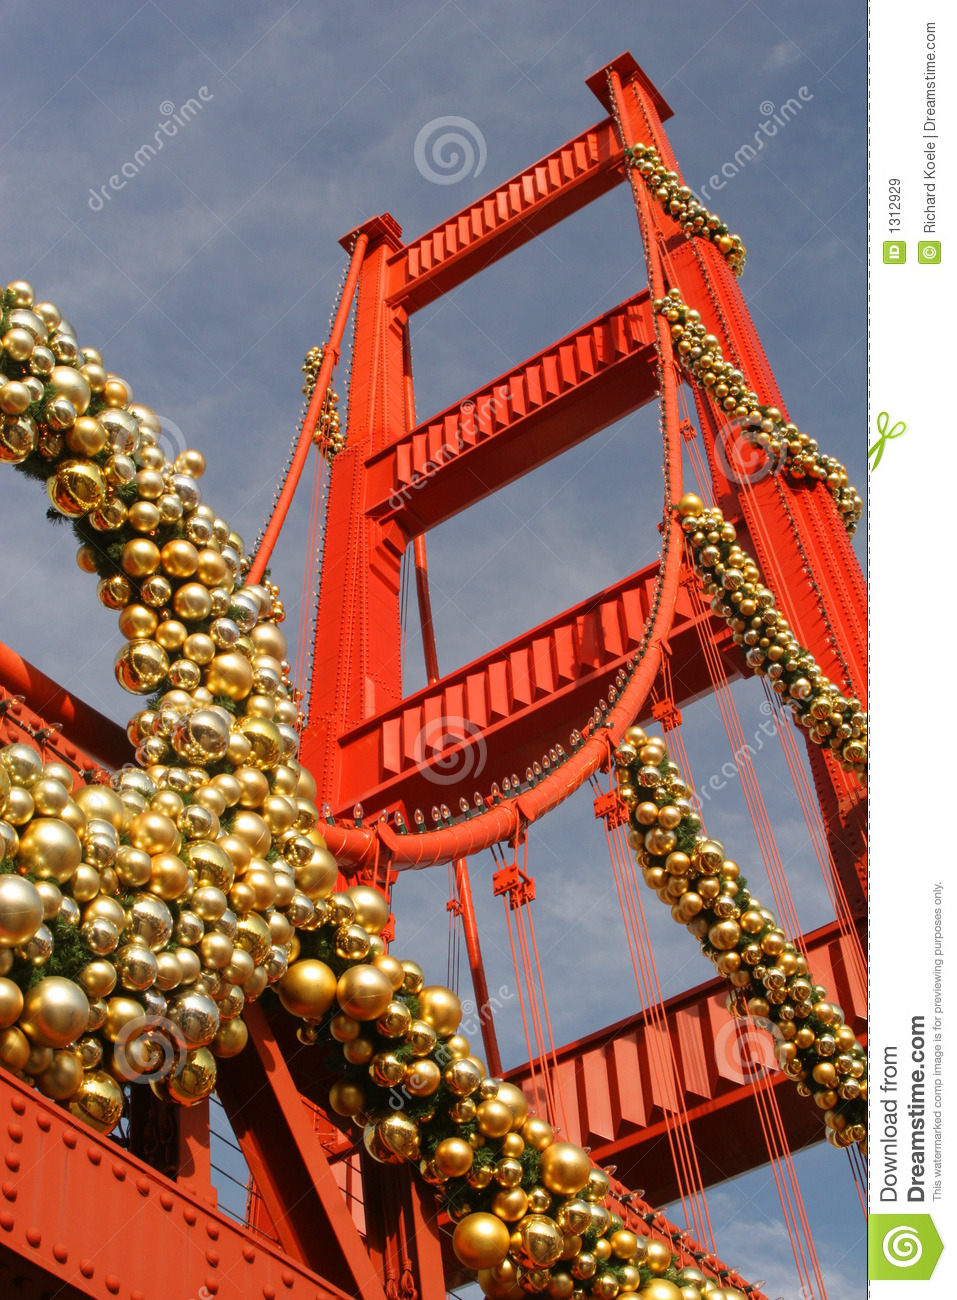 Christmas At The Golden Gate Replica Royalty Free Stock